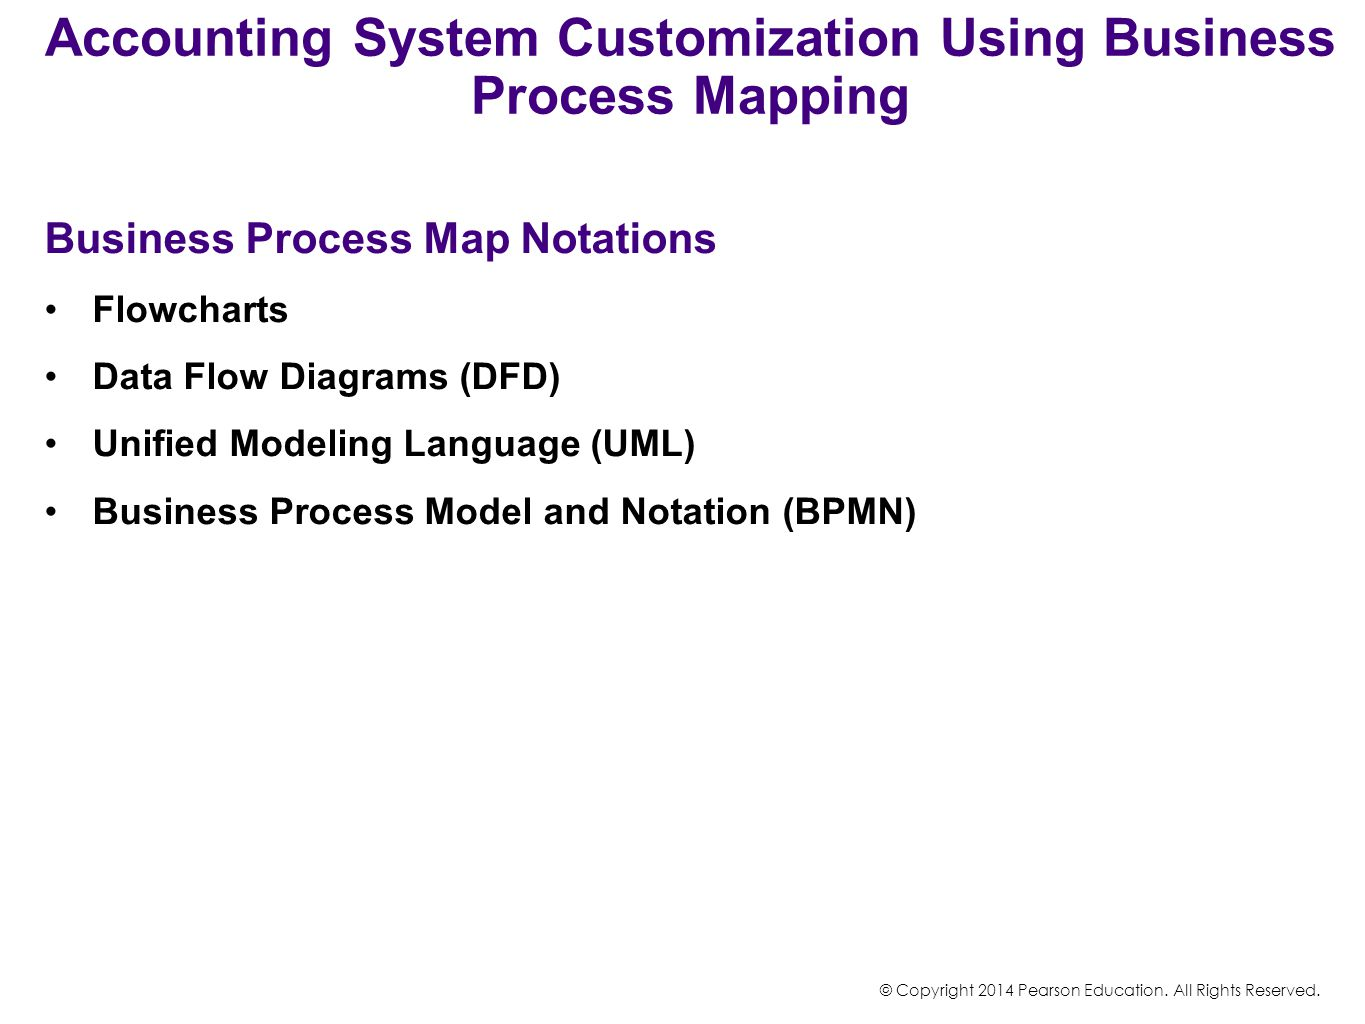 Accounting System Customization Using Business Process Mapping